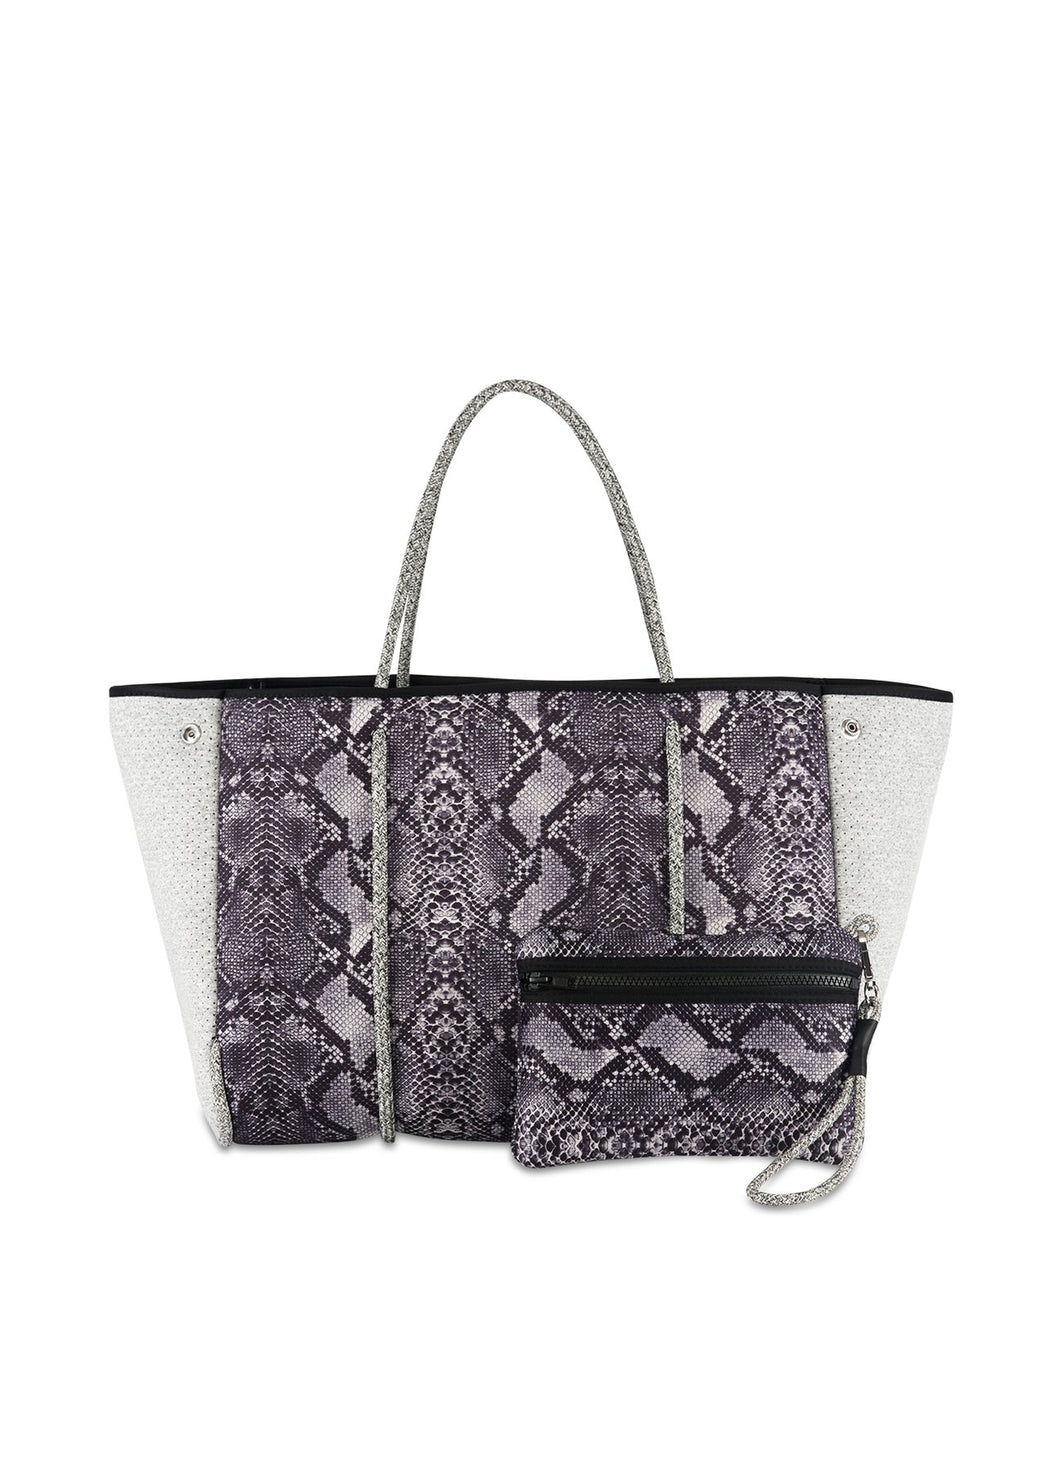 "Haute Shore - The Greyson Tote ""Greyson Rebel"""